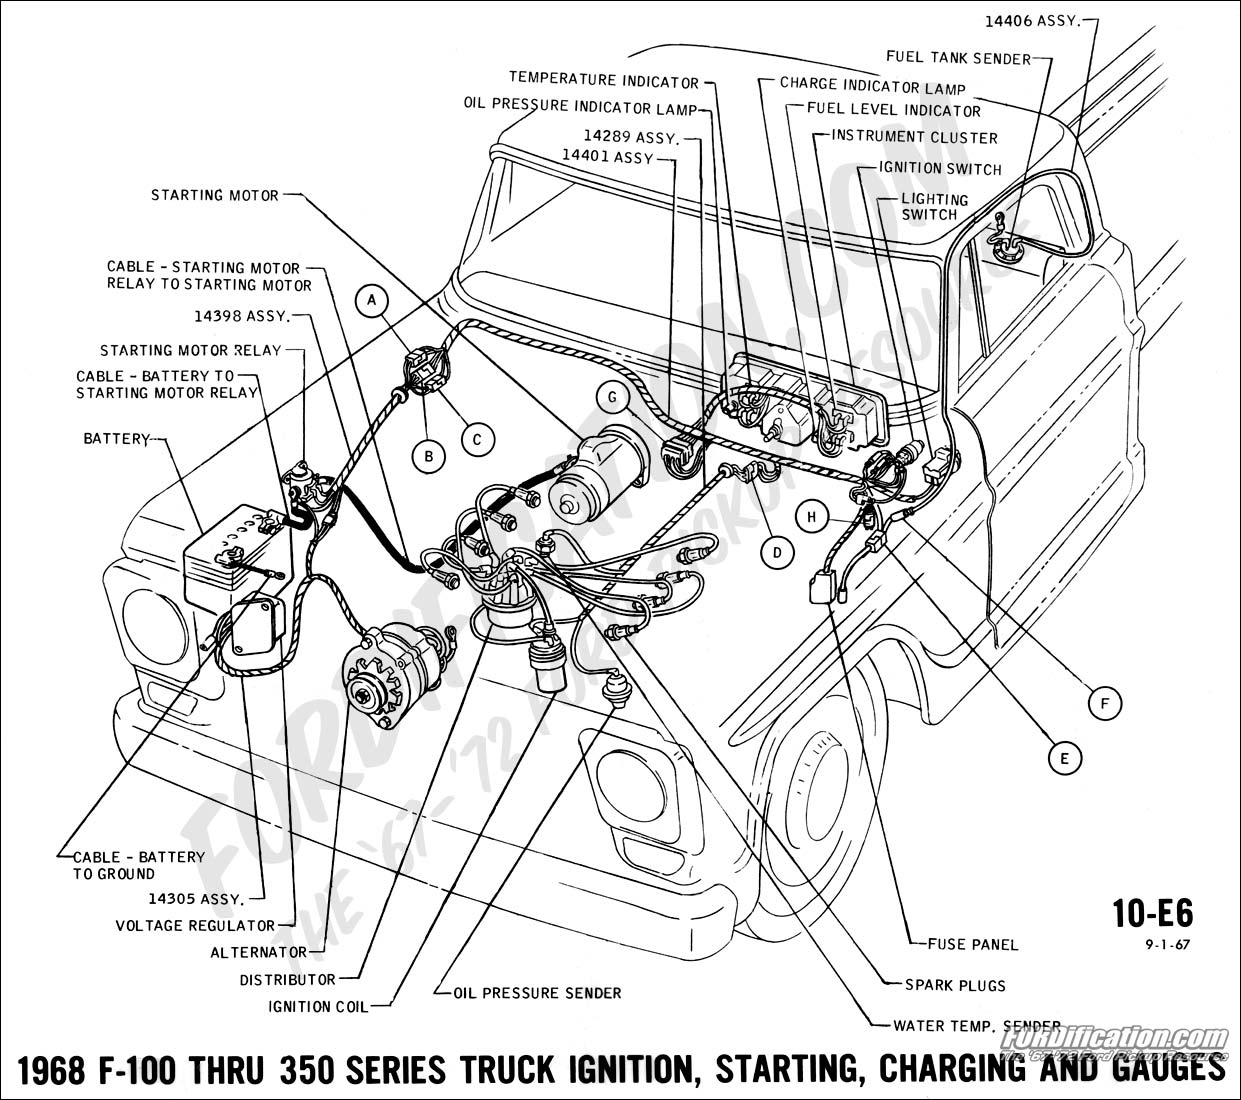 Ford F350 Fuel System Diagram